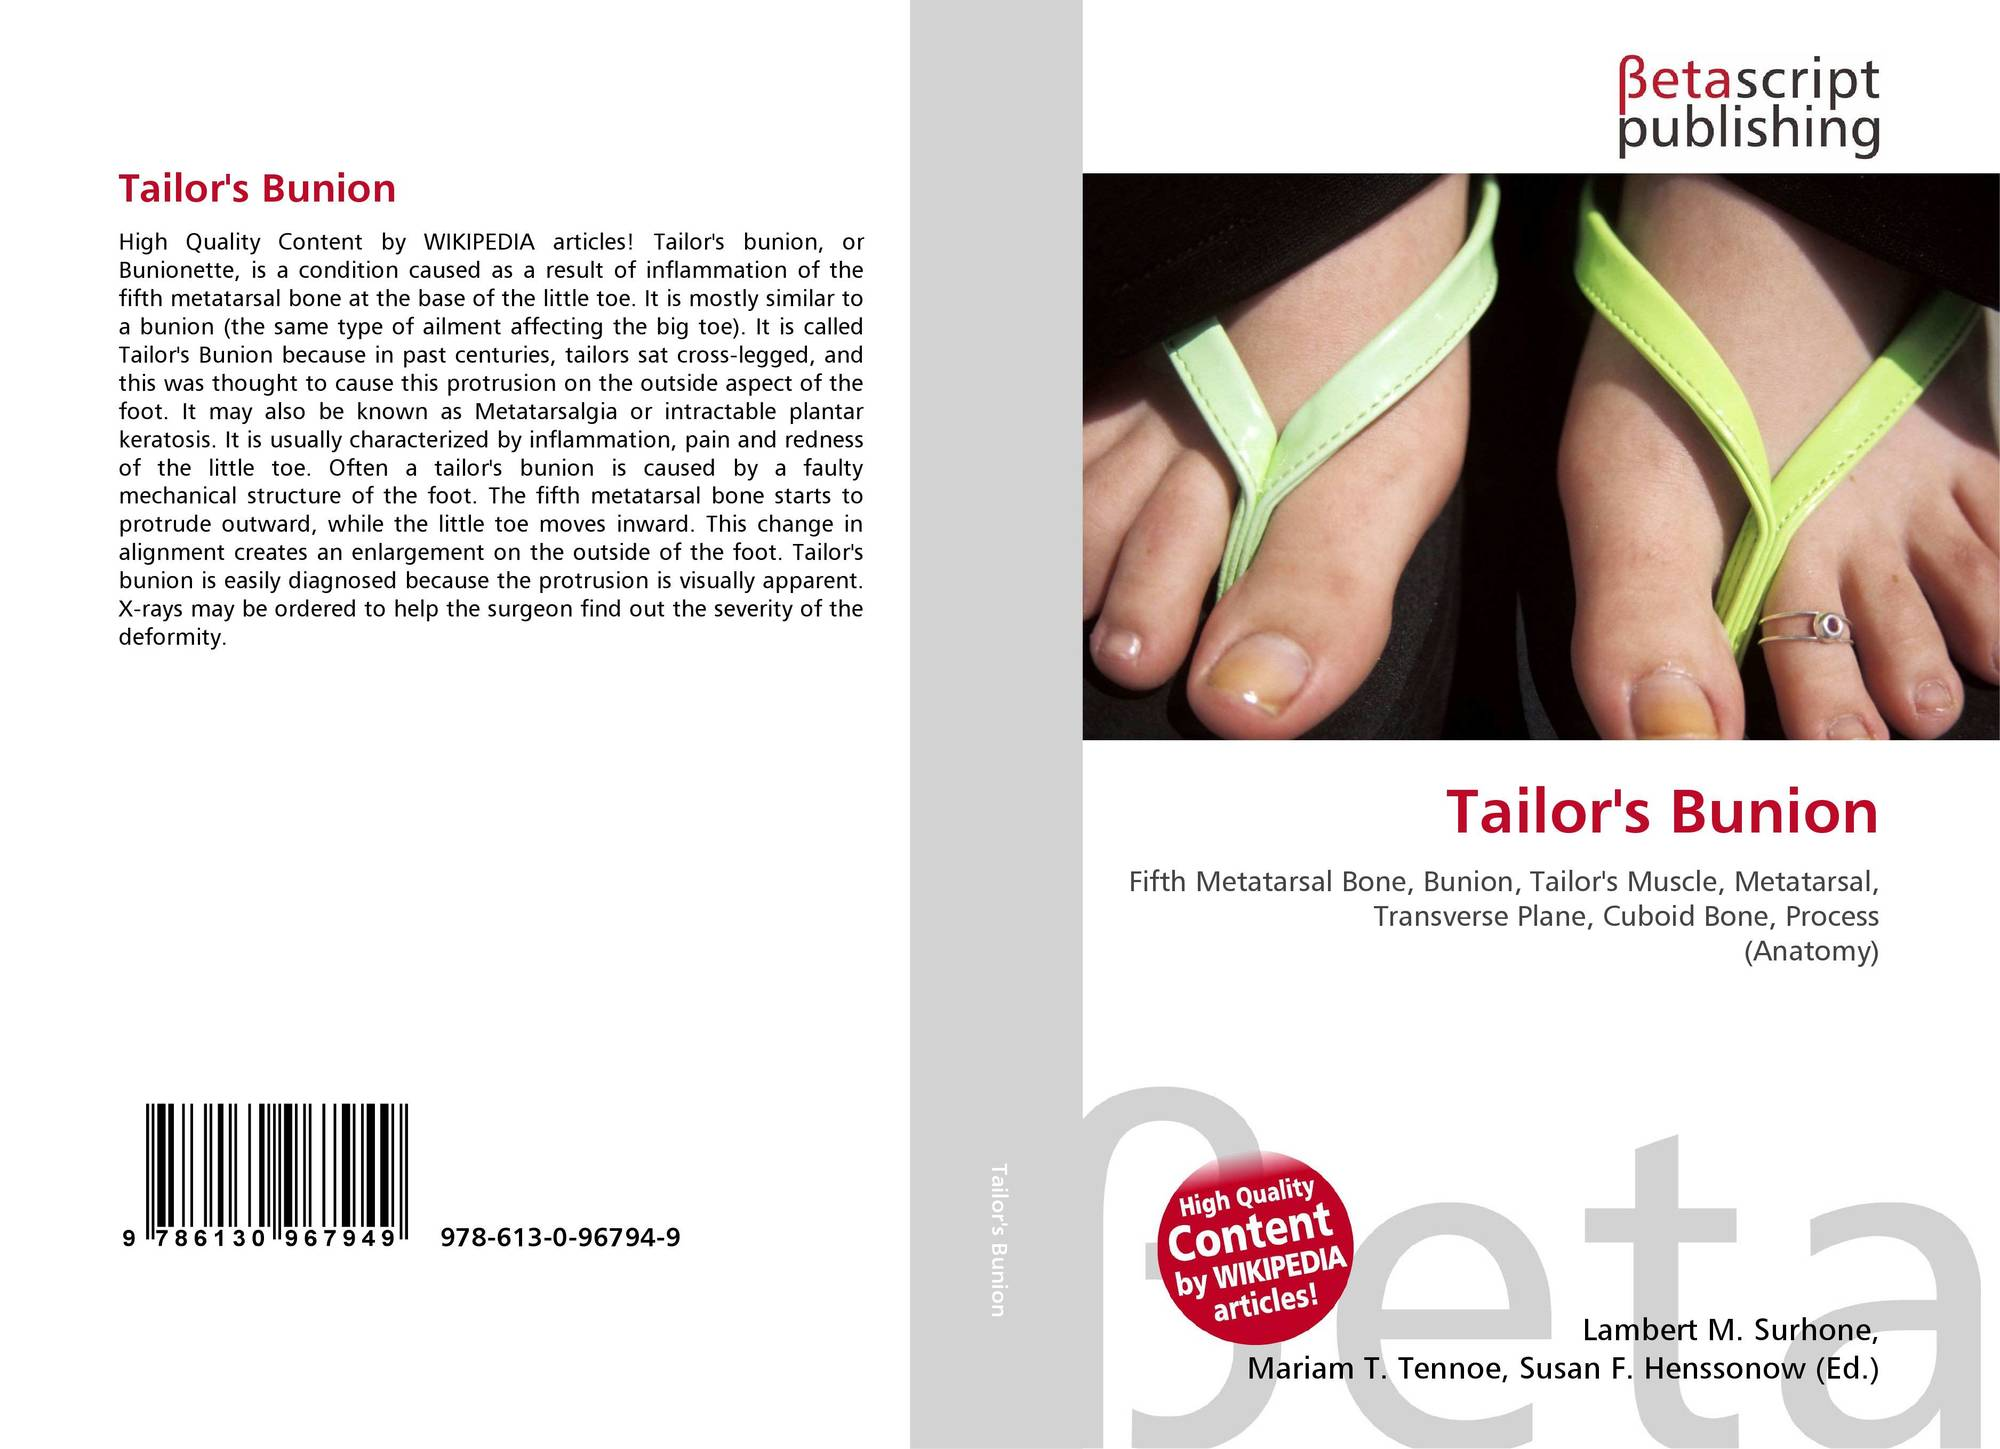 Tailor\'s Bunion, 978-613-0-96794-9, 6130967942 ,9786130967949